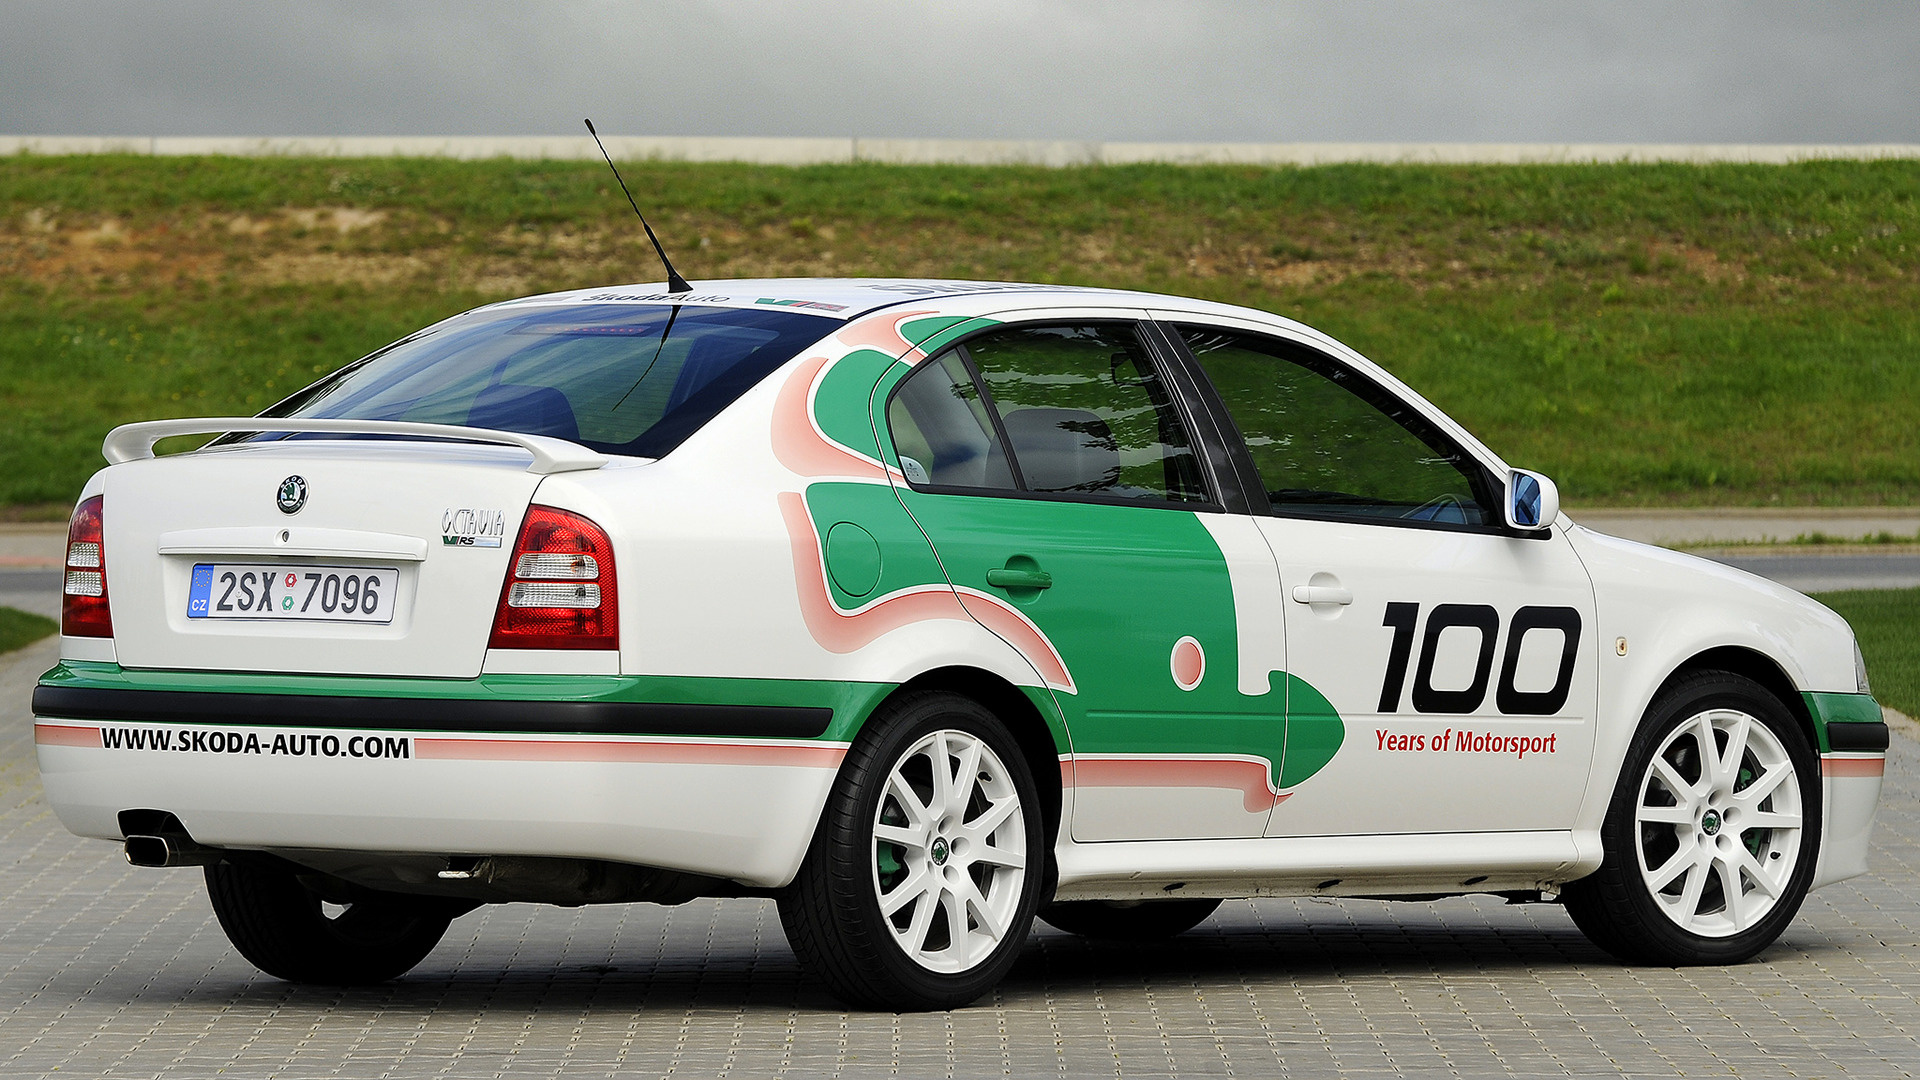 2019 Skoda Octavia RS WRC Limited Edition photo - 3